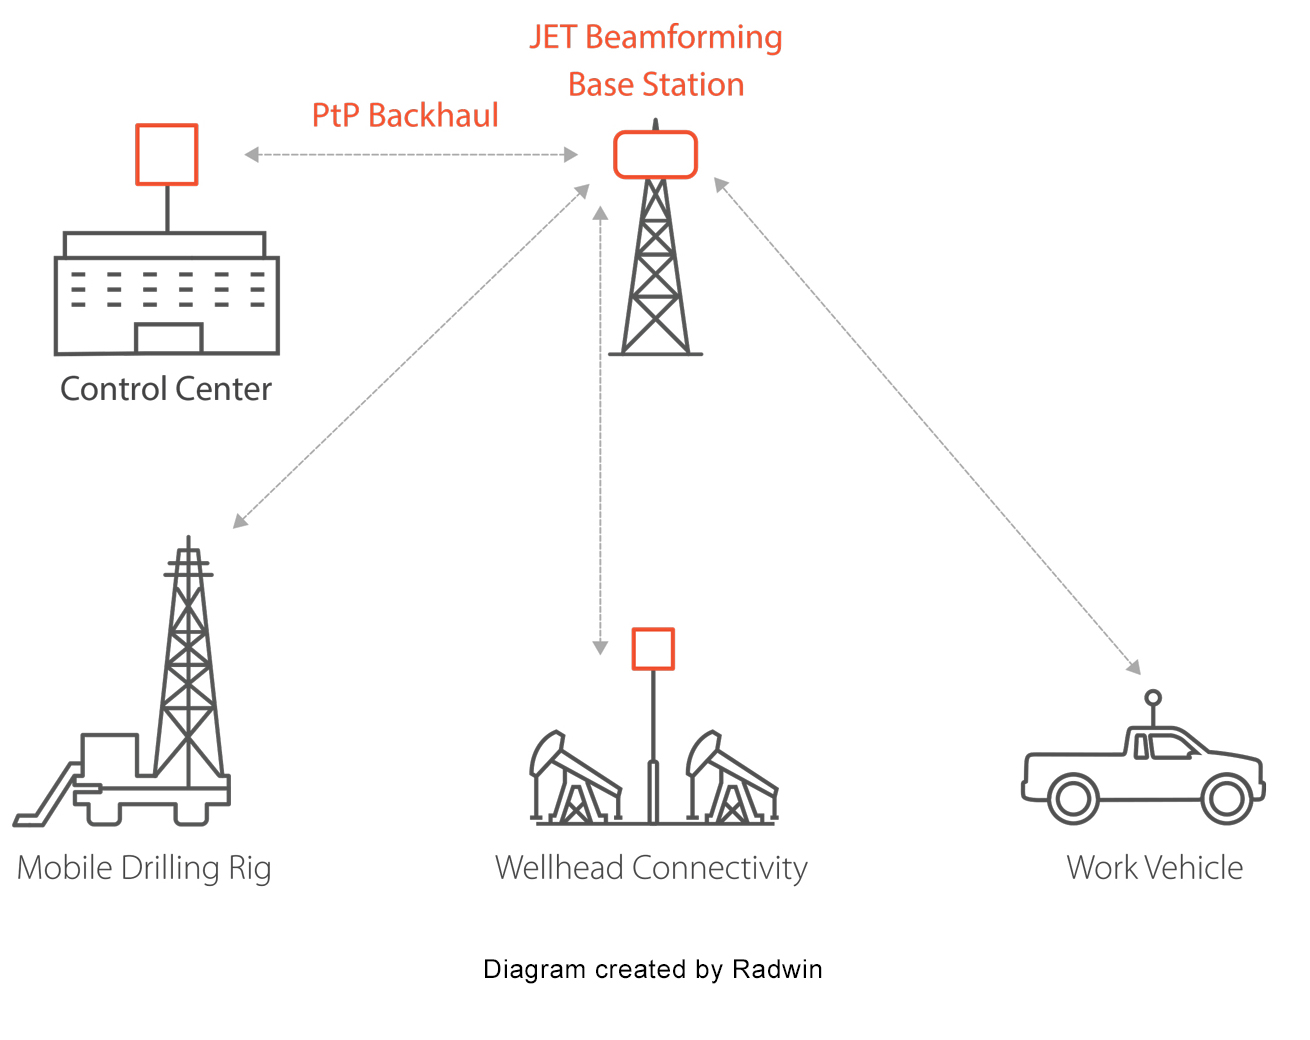 Reliable communications networks in the field